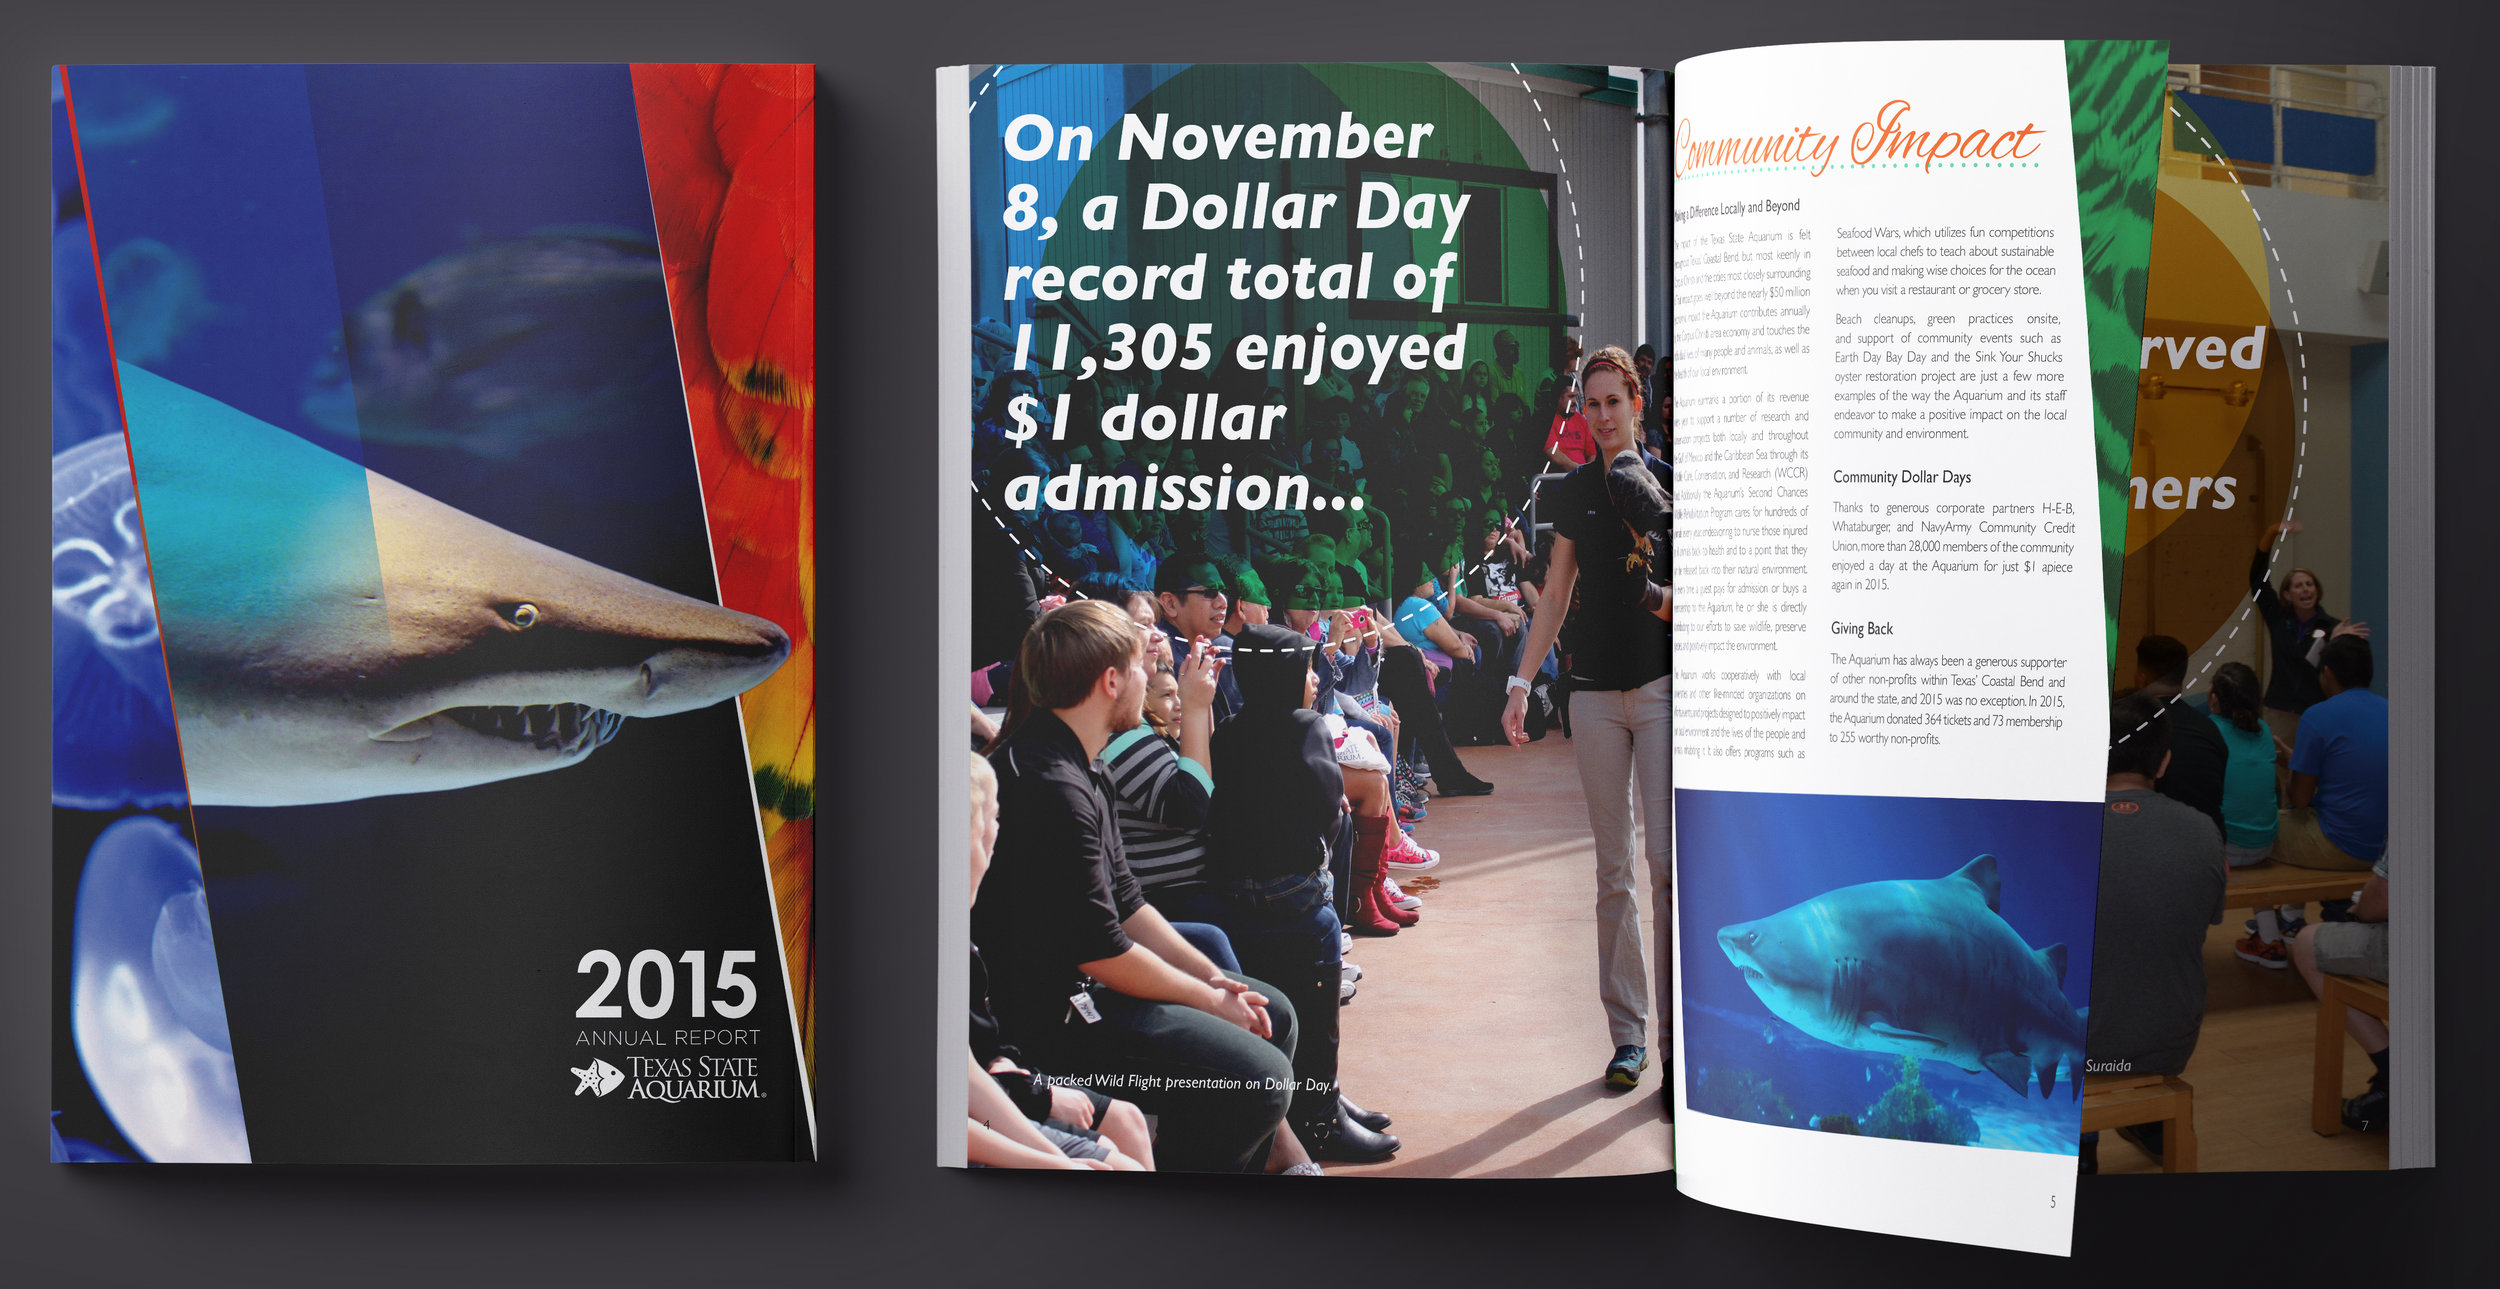 TSA_2015AnnualReport-crop.jpg